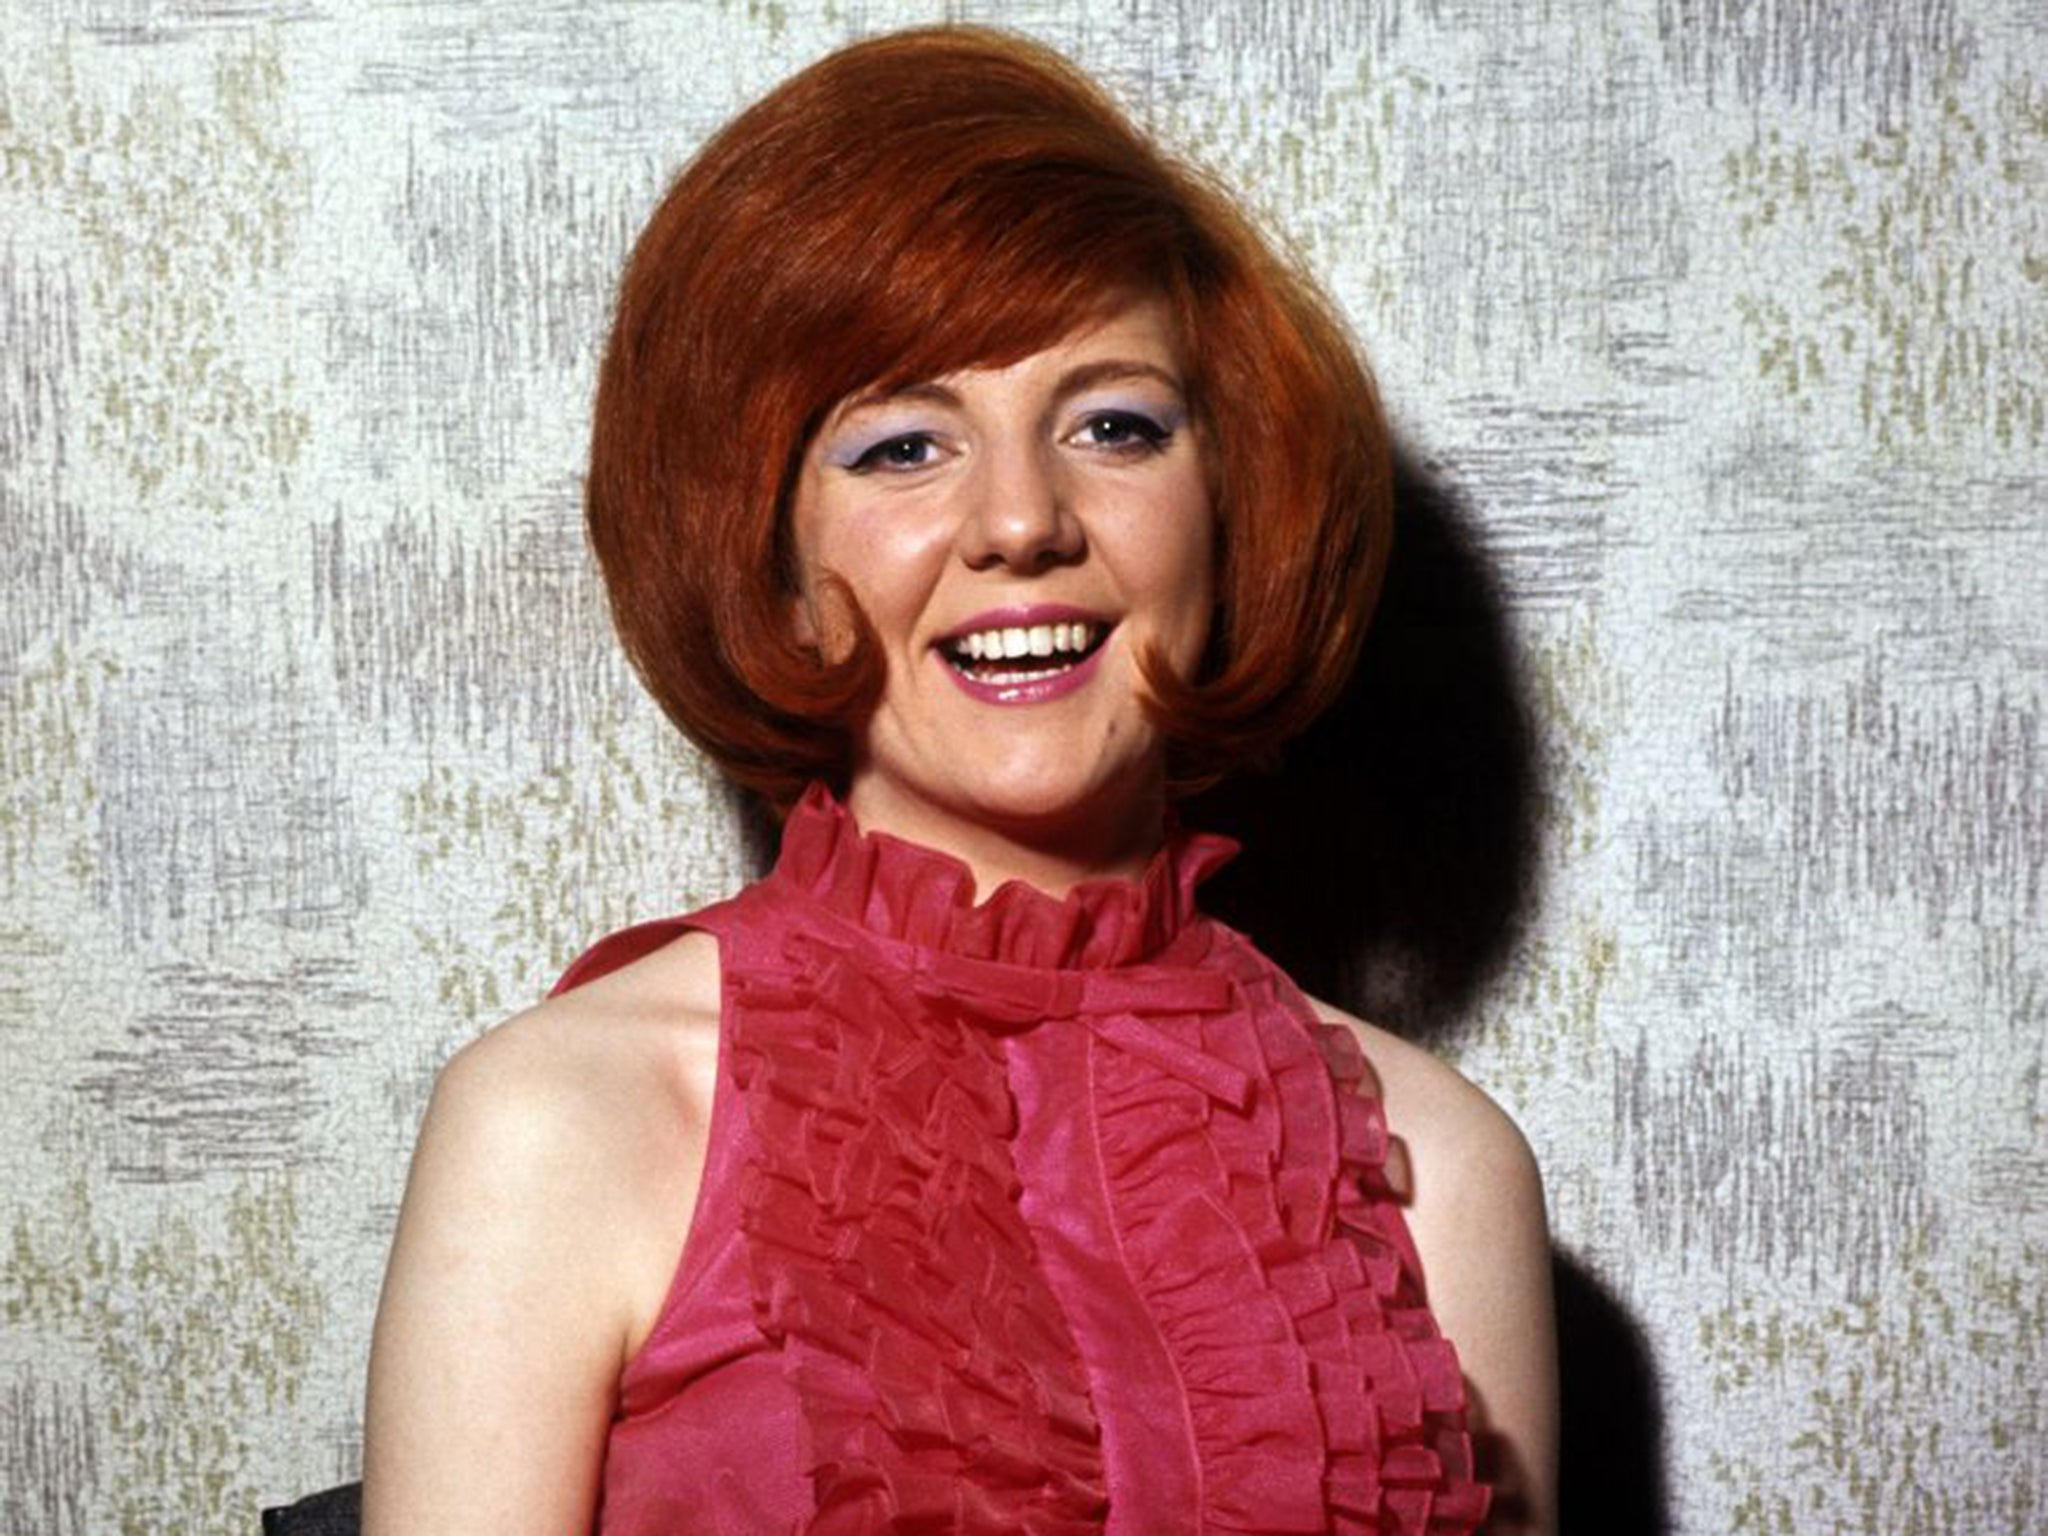 cilla black singer who was signed by brian epstein and